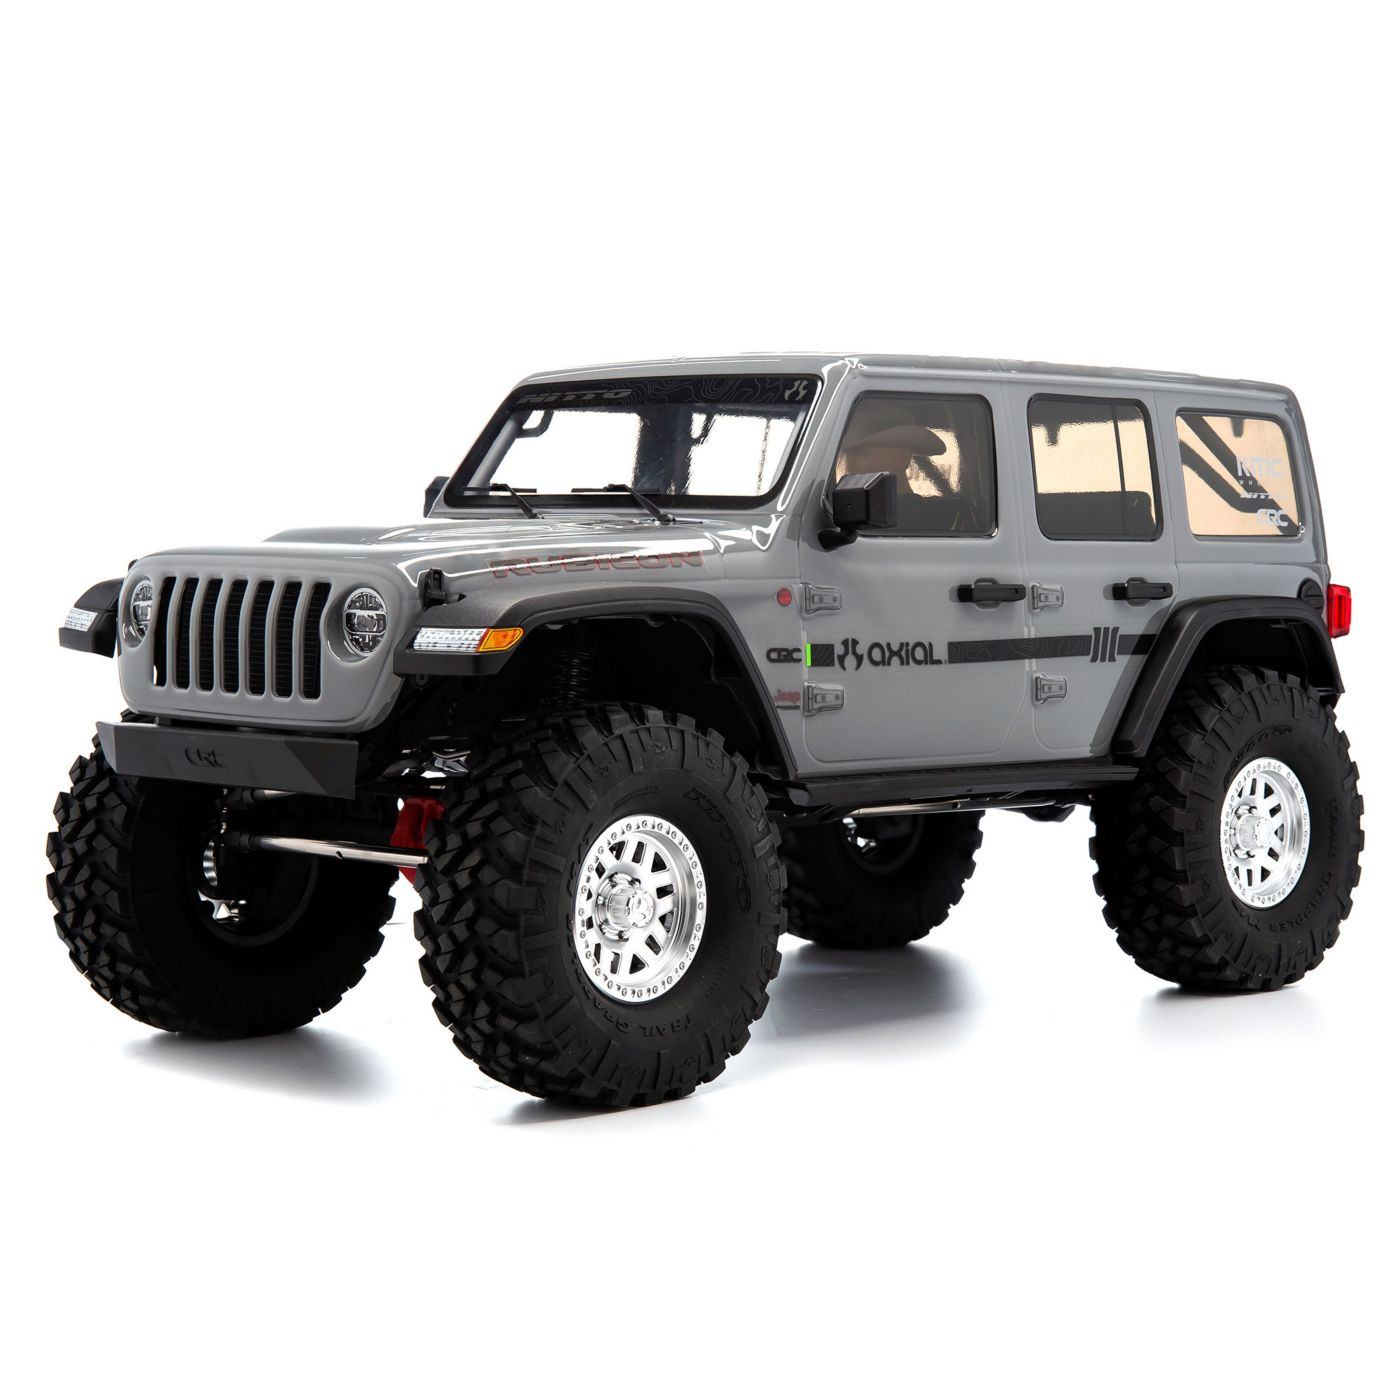 "Axial Racing 1/10 SCX10 III Jeep JLU Wrangler with Portals RTR, Gray <font color=""red""><b>(PREORDER)</b></font>"